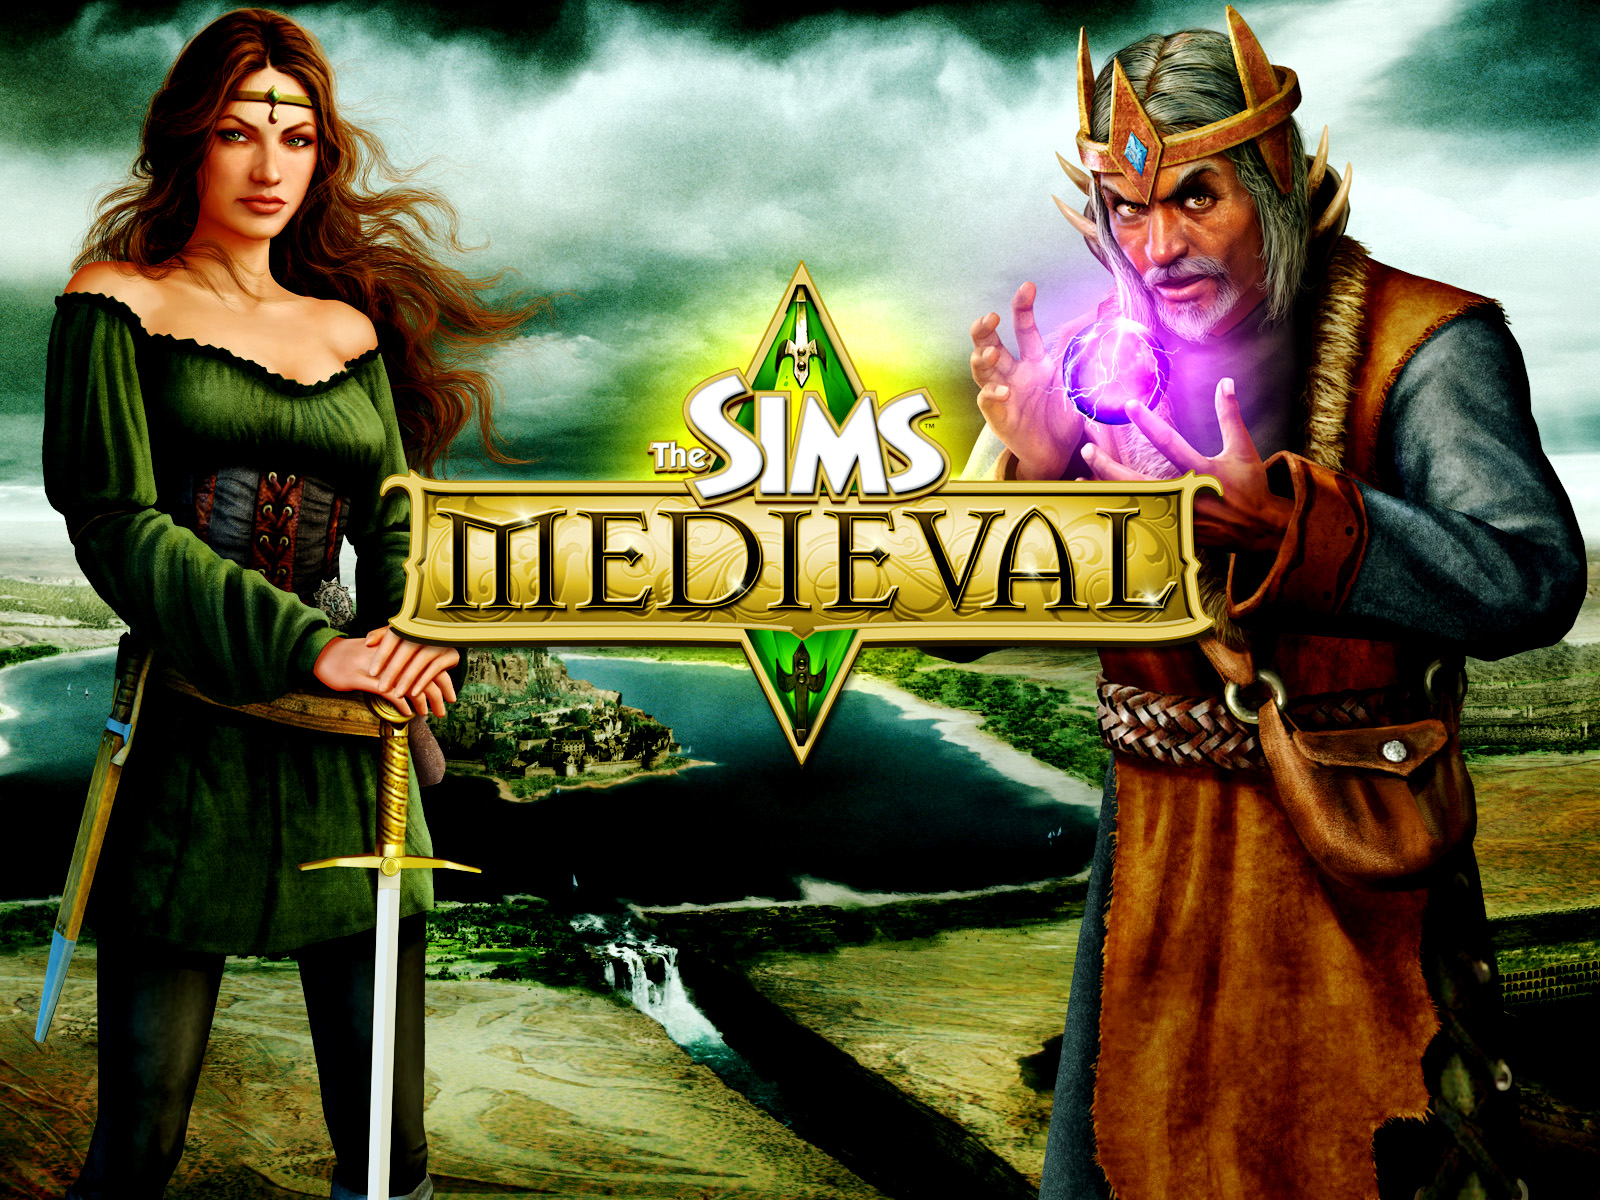 The Sims Medieval HD Wallpapers Download Wallpapers in HD for 1600x1200